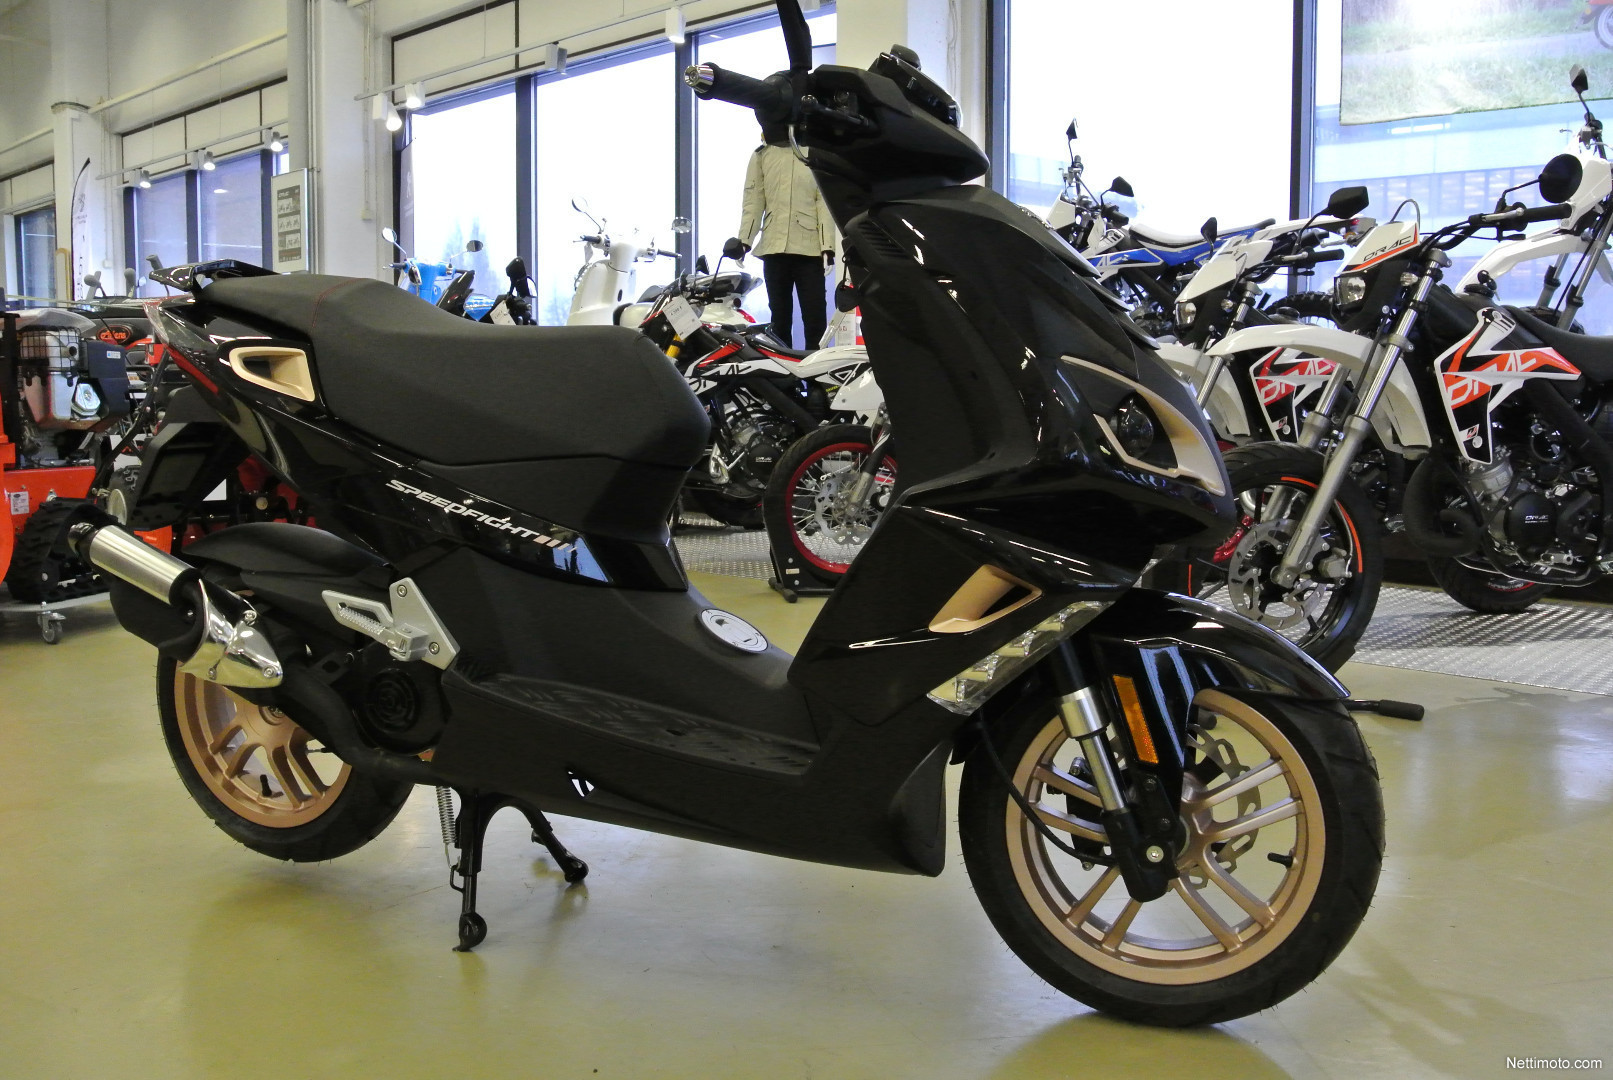 peugeot speedfight 4 black pure 2t ac 50 cm 2017 vantaa scooter nettimoto. Black Bedroom Furniture Sets. Home Design Ideas